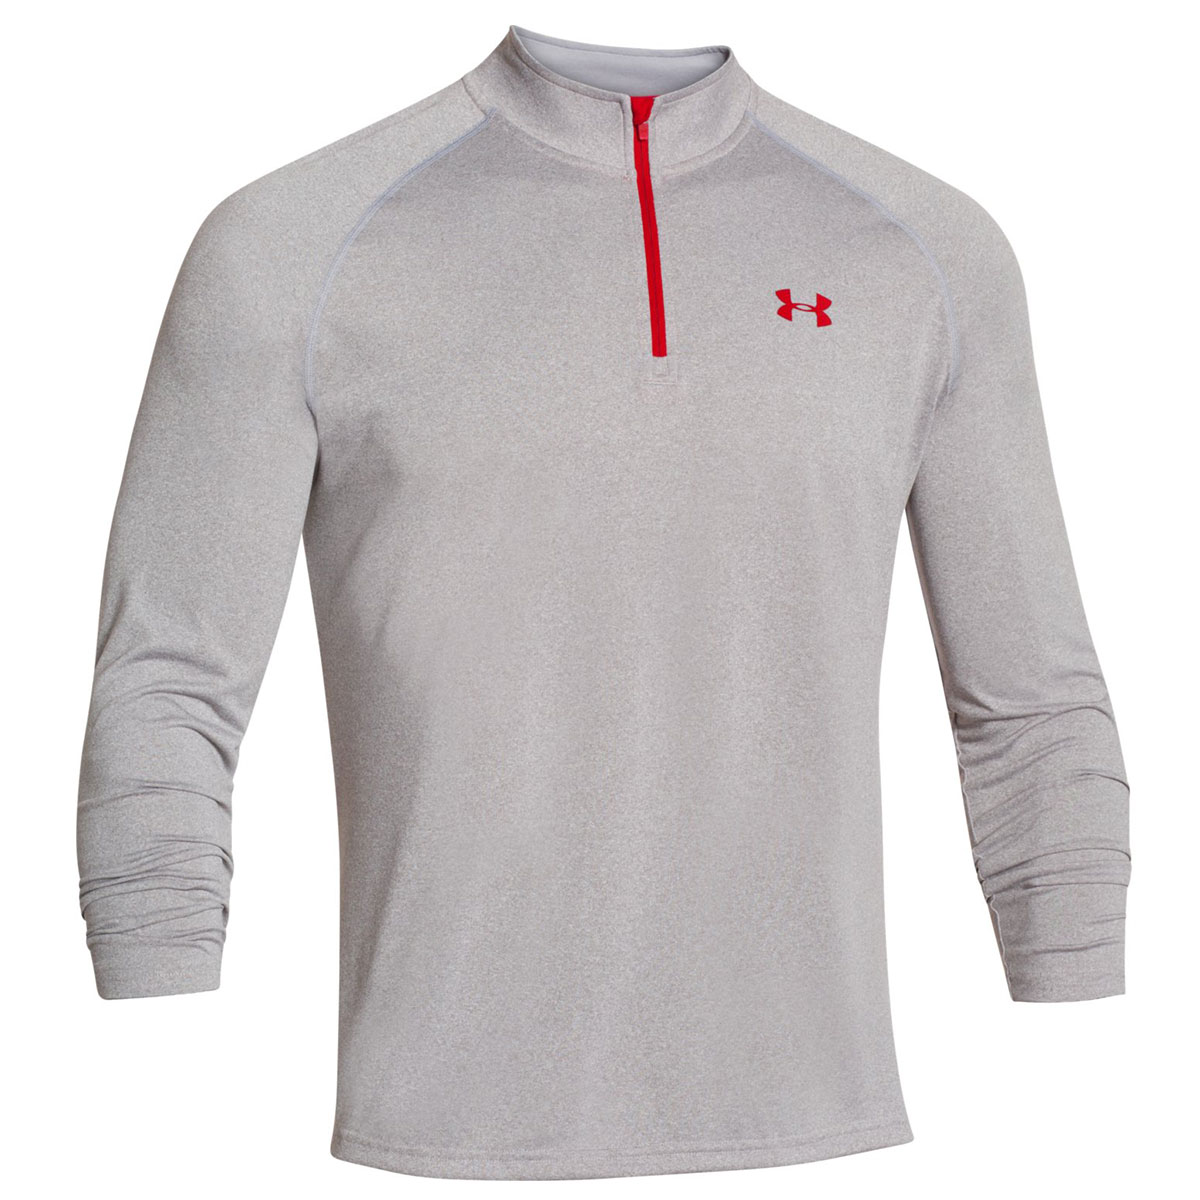 Under-Armour-Mens-UA-Tech-1-4-Zip-Long-Sleeve-Top-Workout-Layer-27-OFF-RRP thumbnail 90